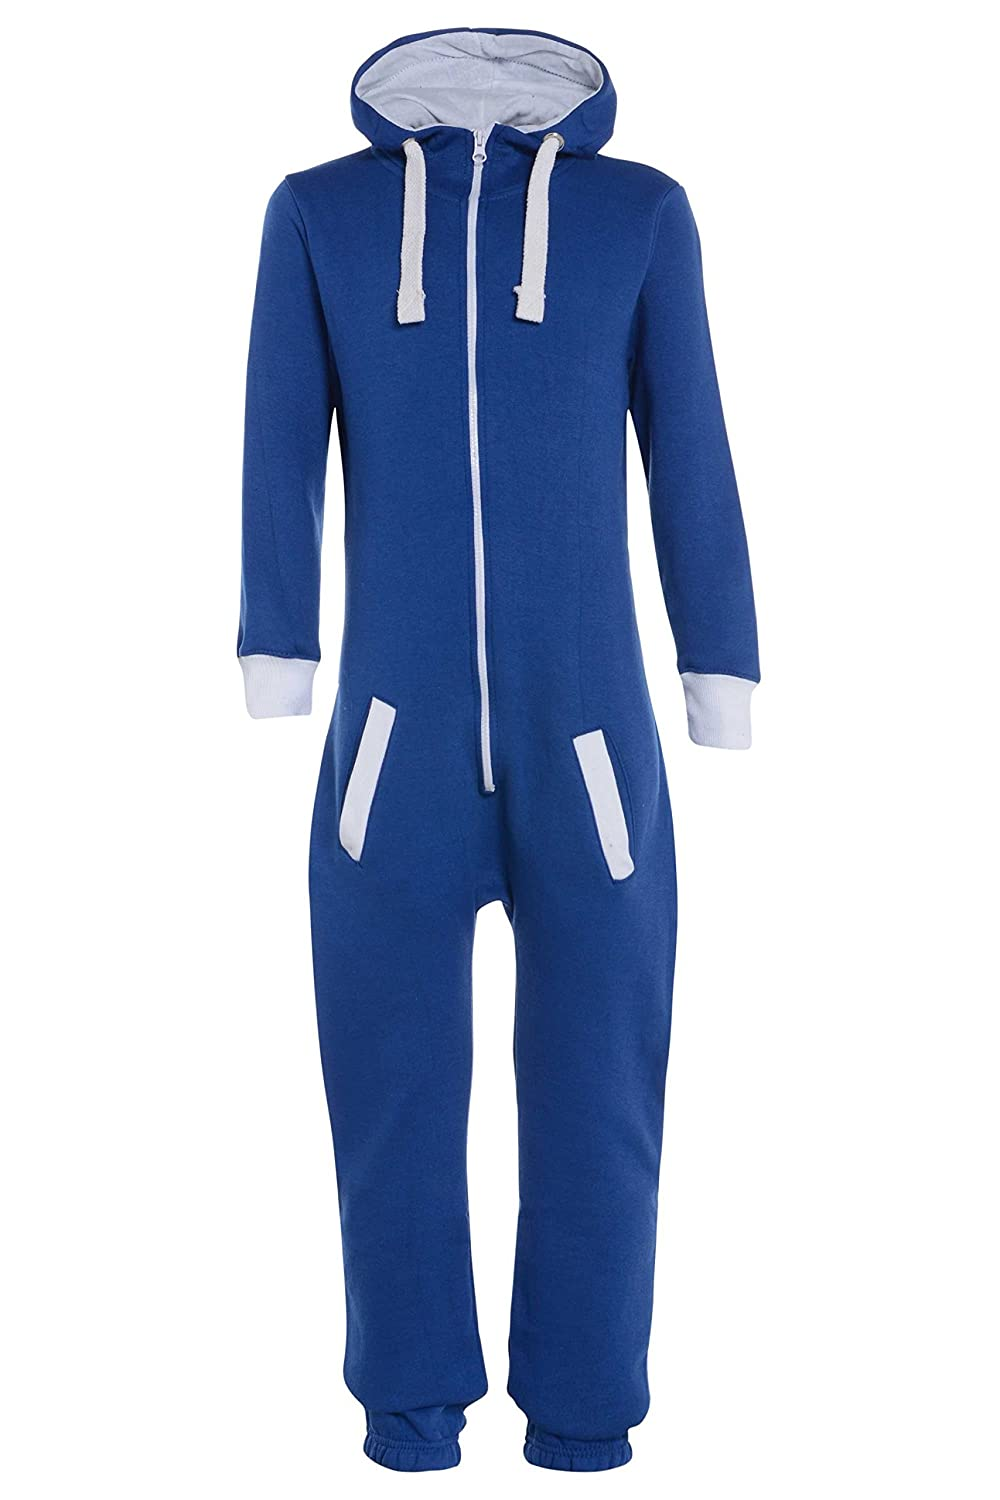 Childrens Unisex Boys Girls Kids Plain Onesie Hooded All In One Jumpsuit Sizes 7-14 Years Black & Grey (11-12, ROYAL BLUE)